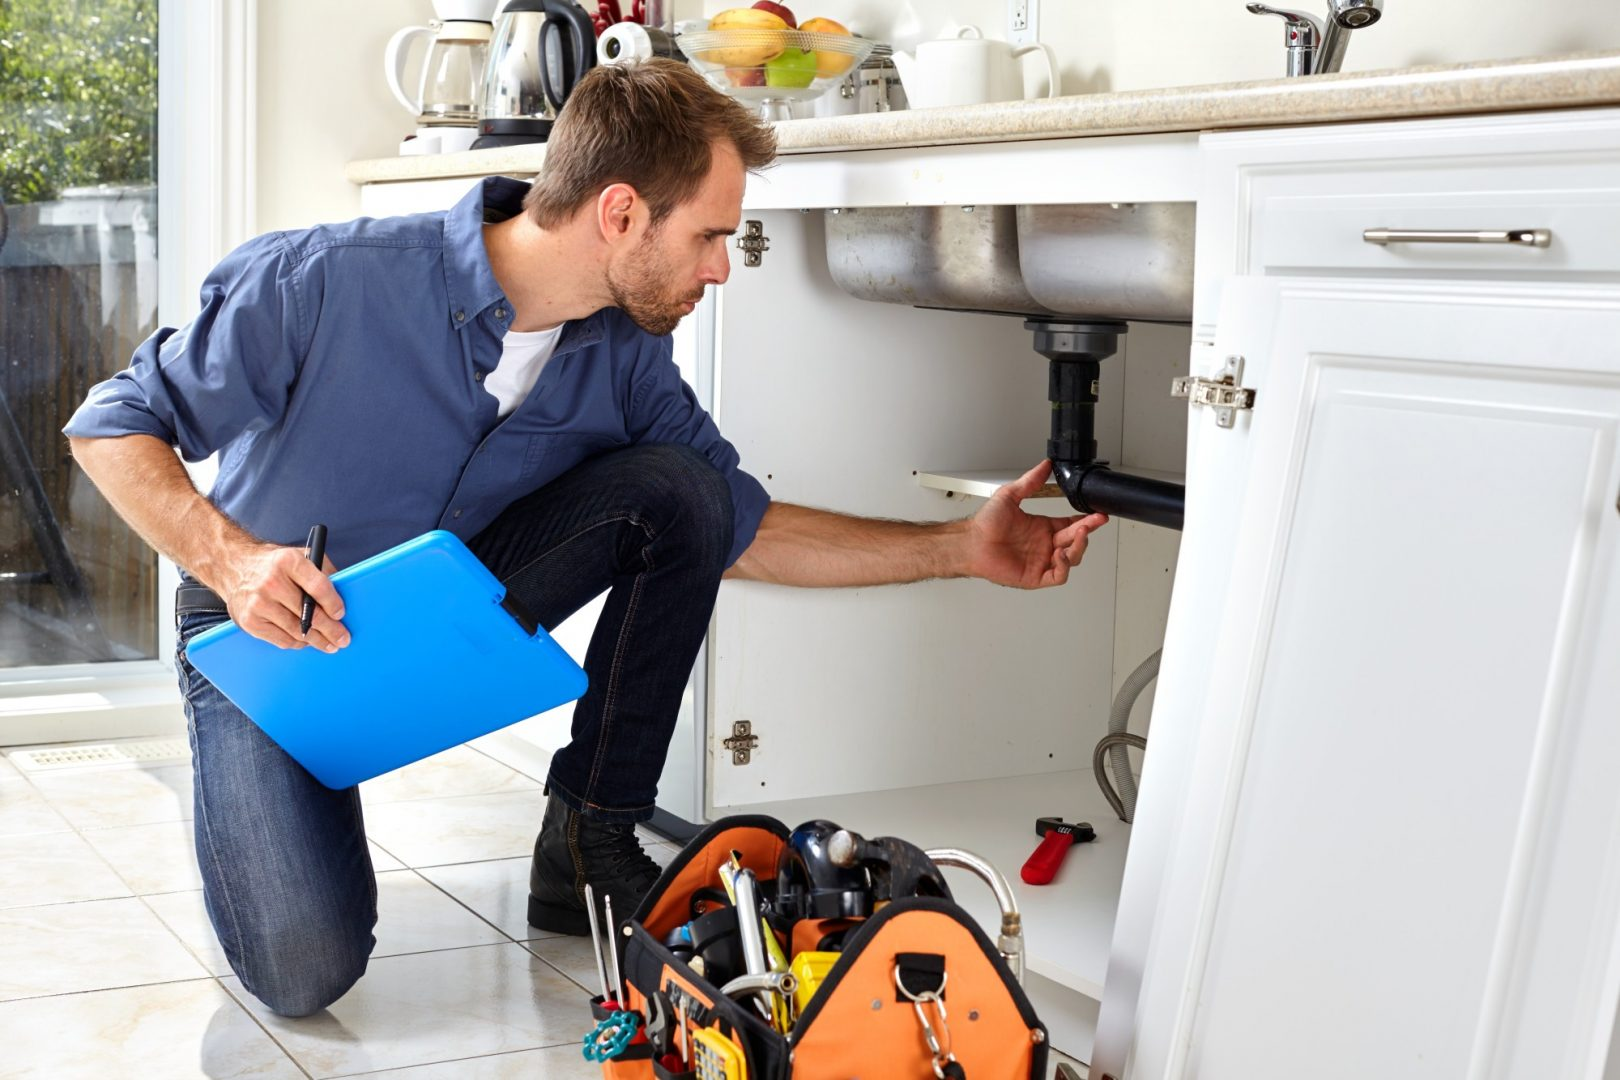 Emergency Plumber in Daly City